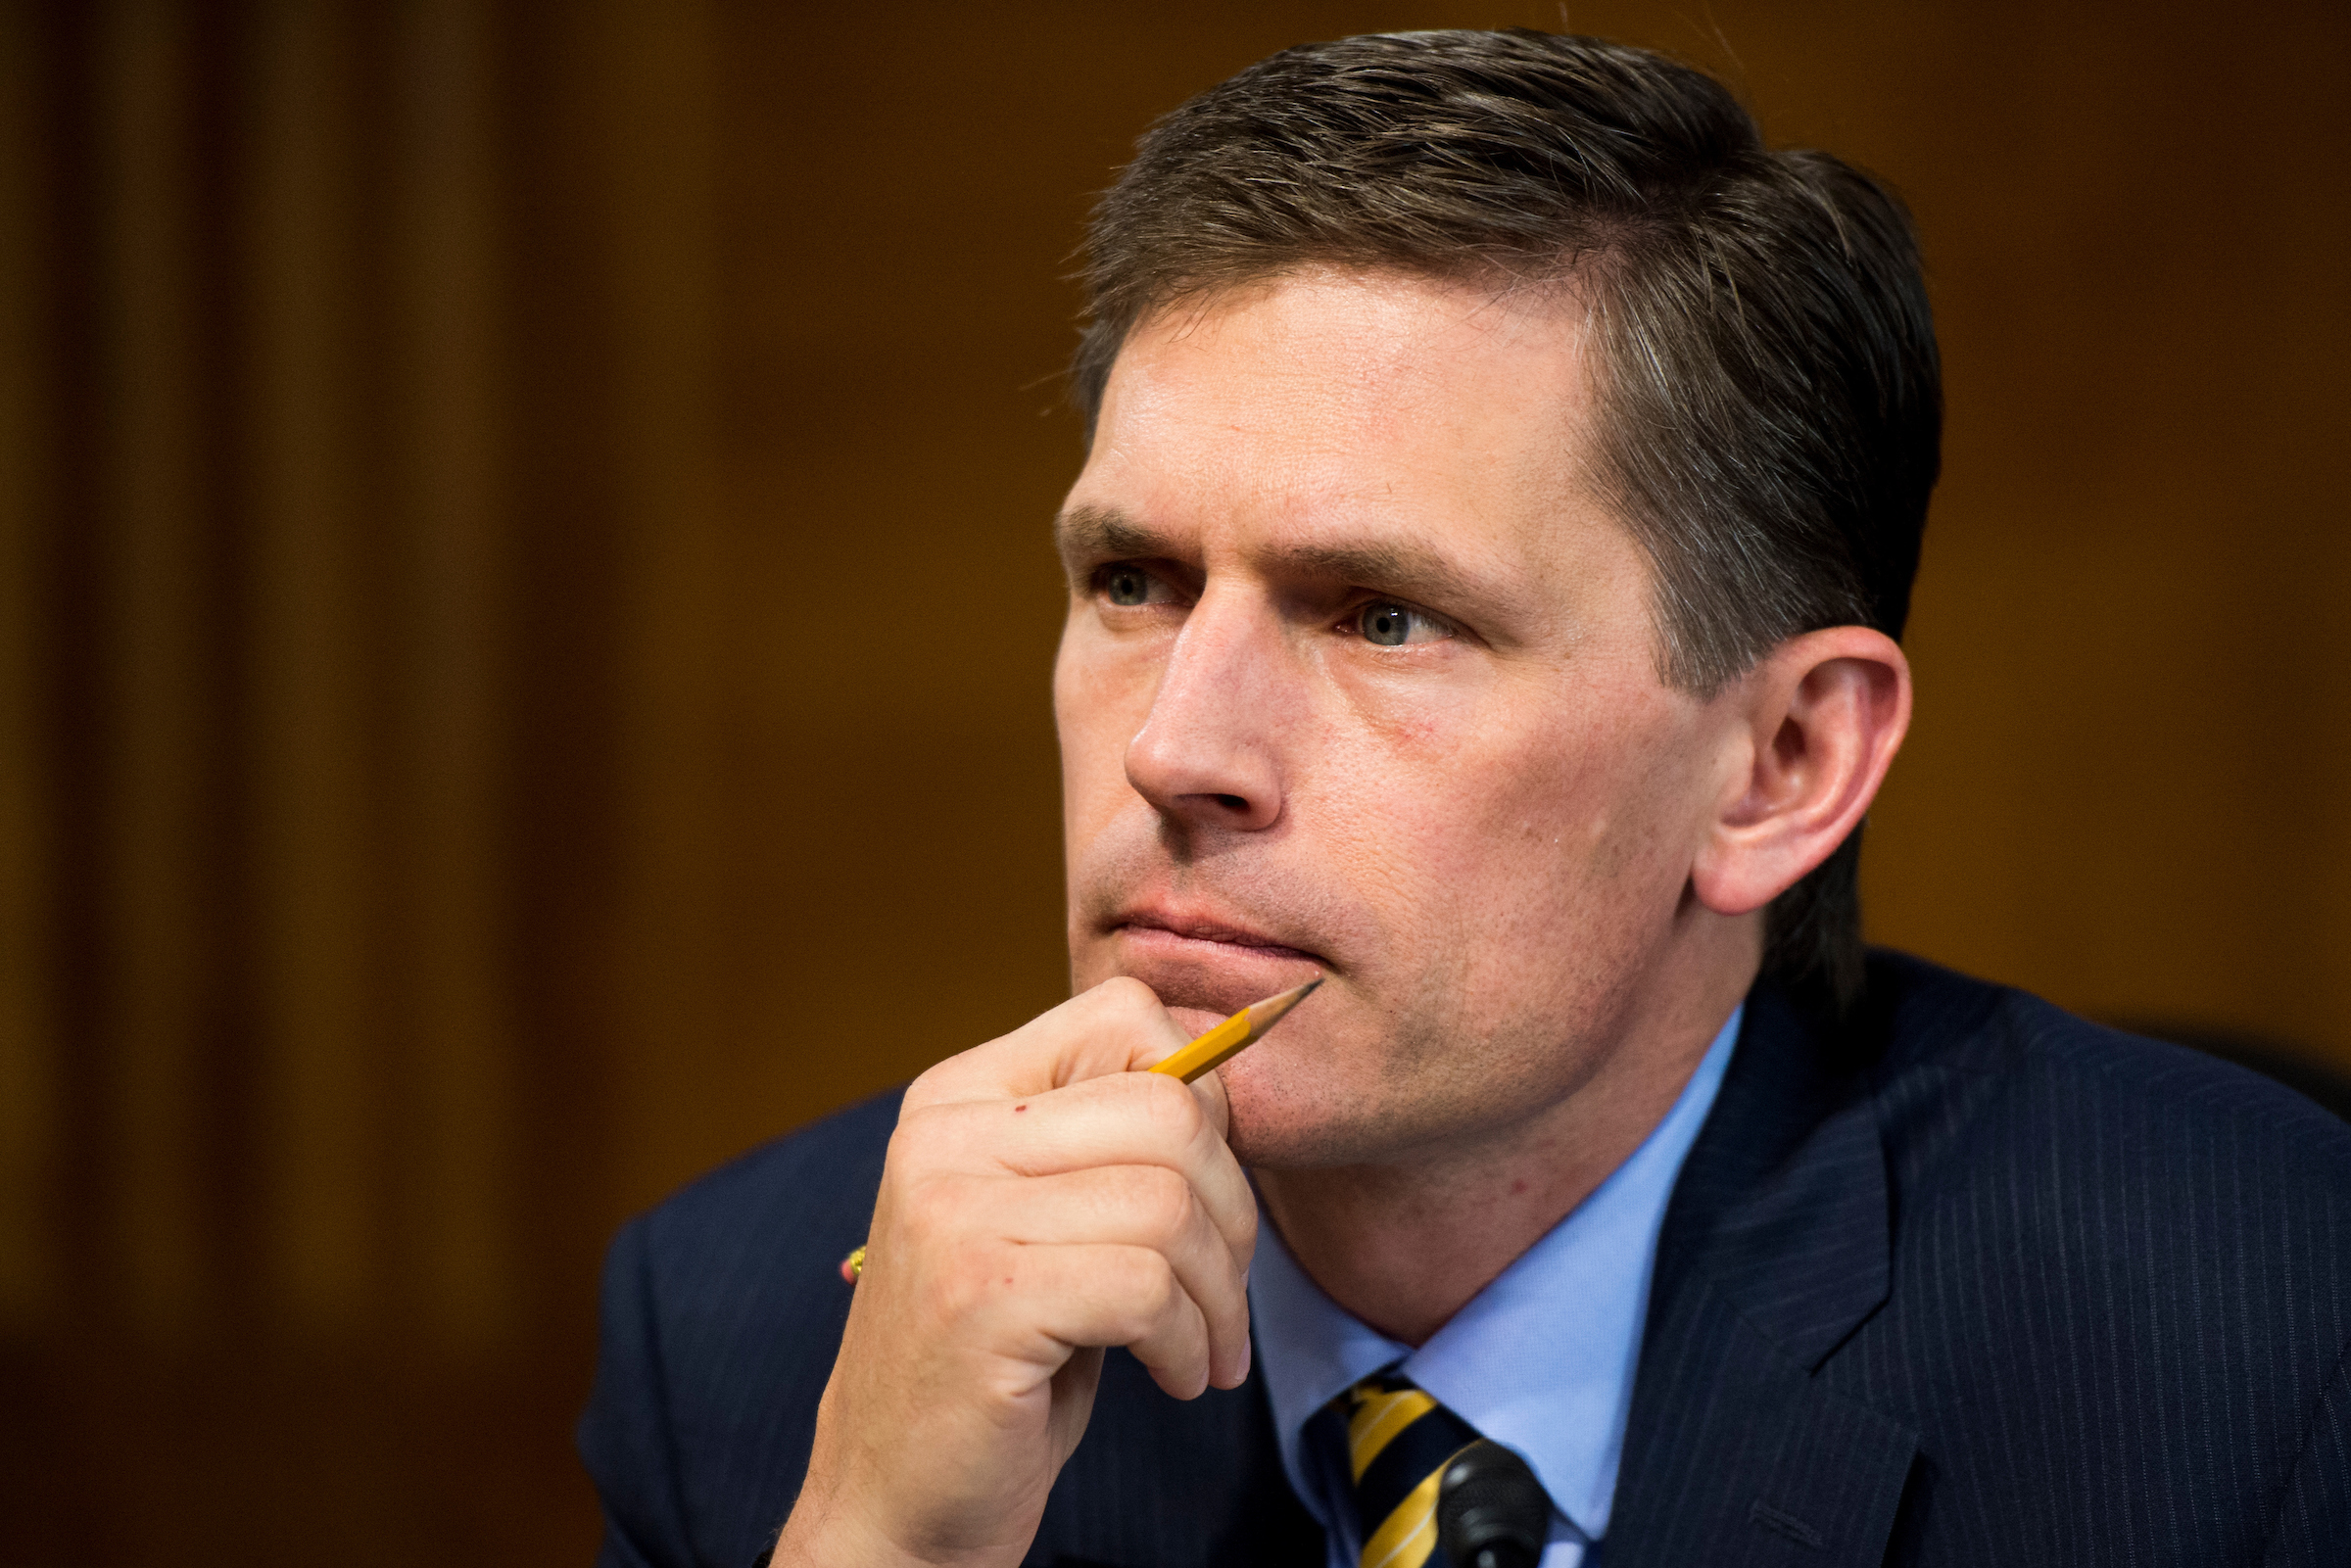 New Mexico Sen. Martin Heinrich has said members of his staff and family have been targets of cyberattacks. (Bill Clark/CQ Roll Call file photo)